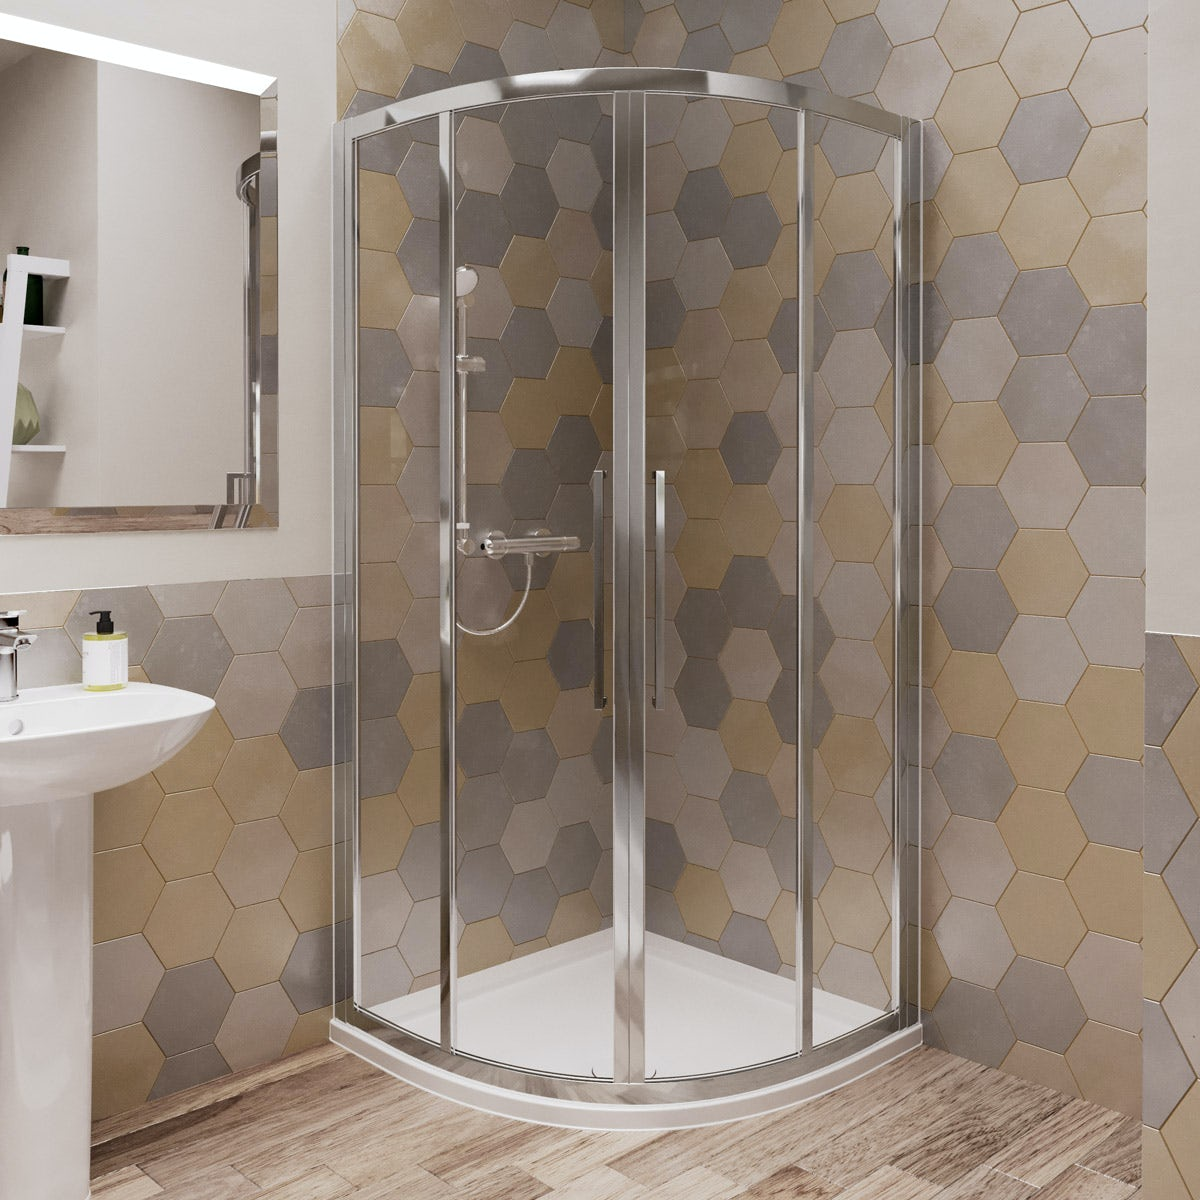 Ideal Standard 6mm sliding Idealclean quadrant shower enclosure with tray and waste